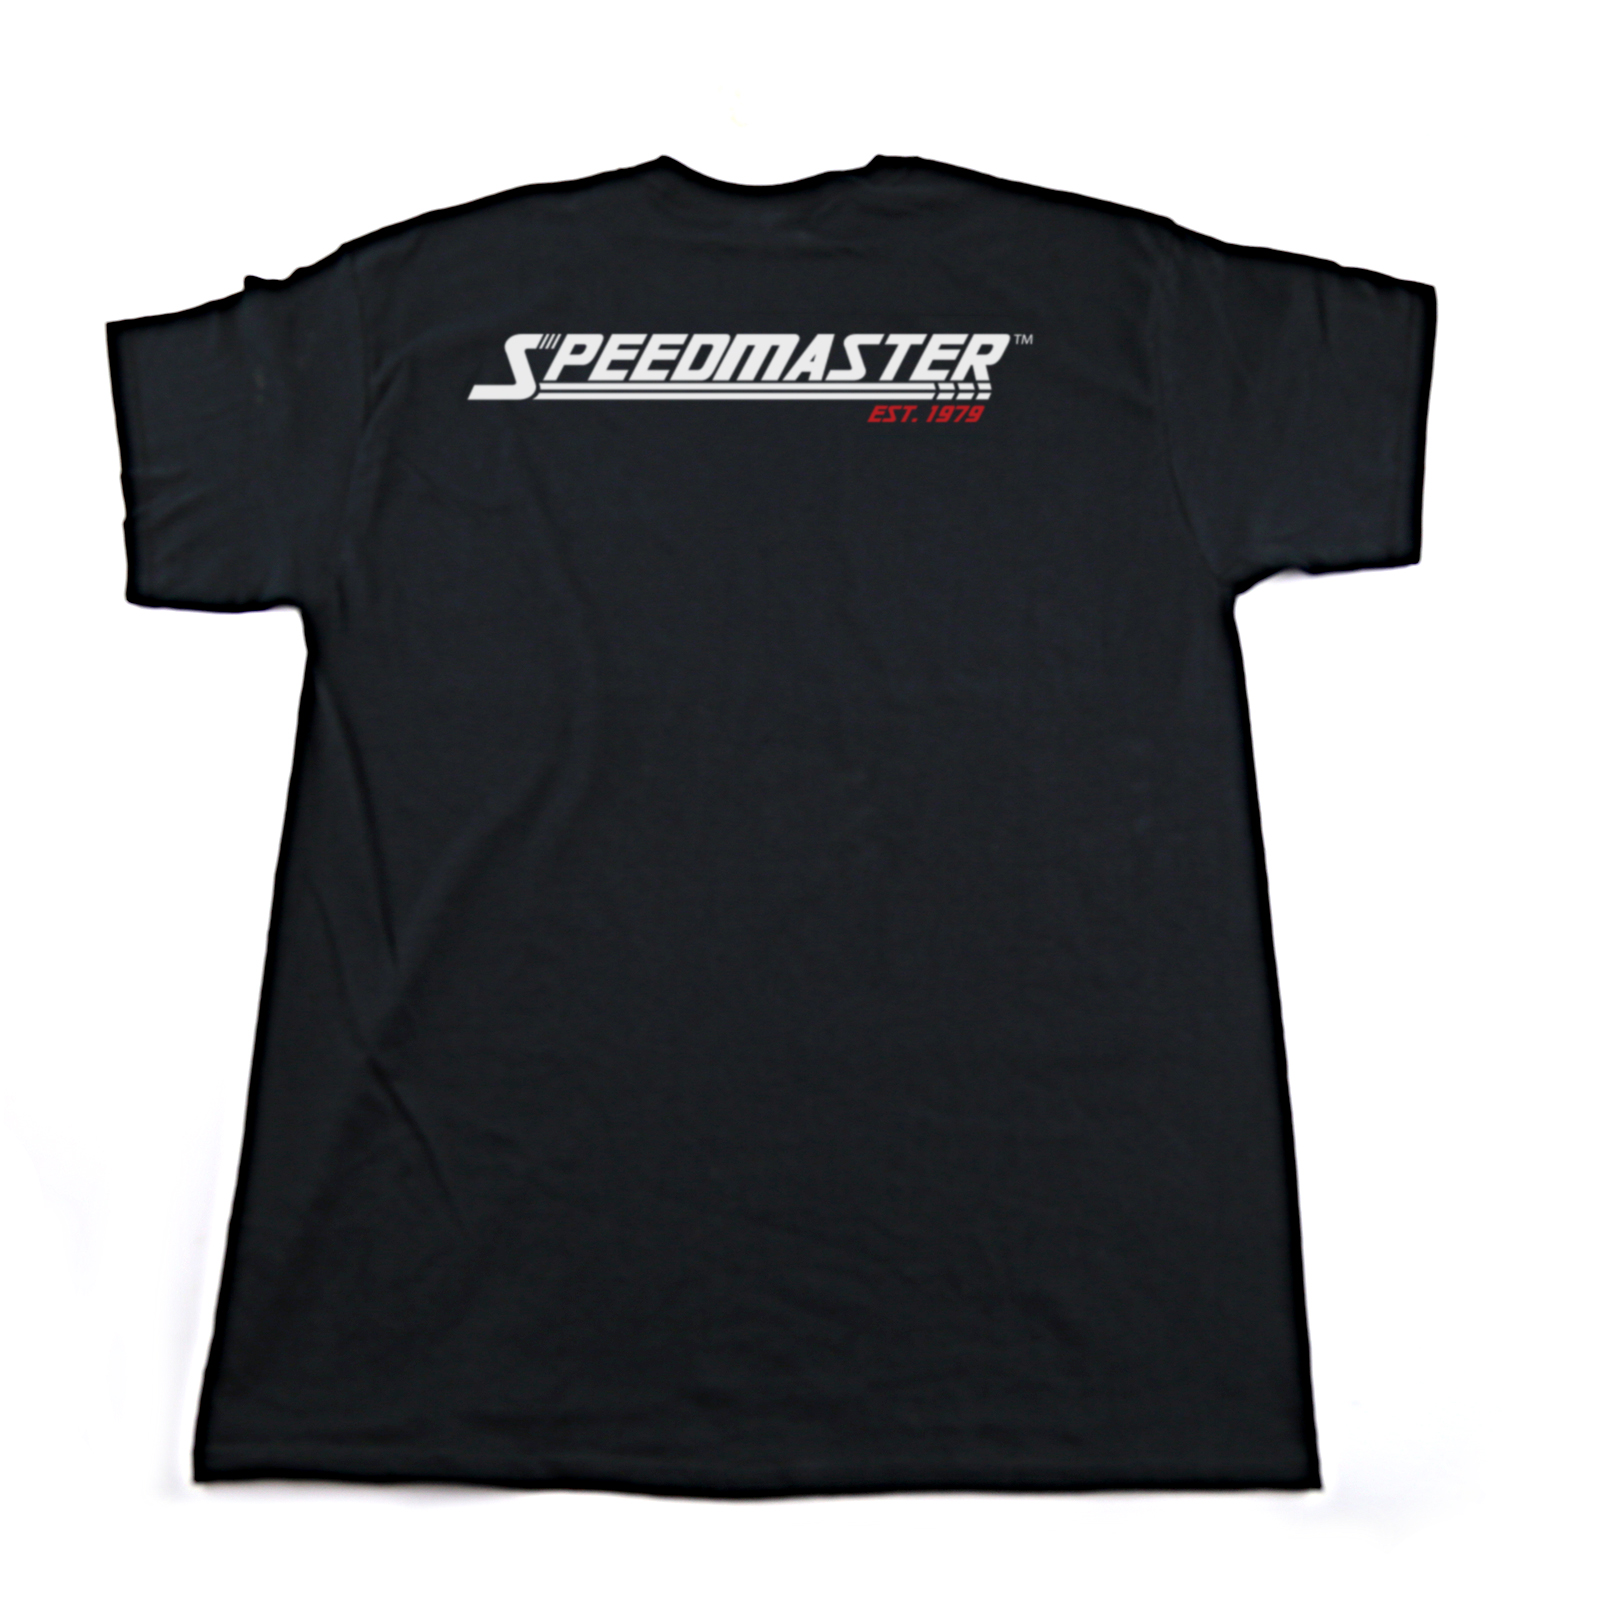 Speedmaster Black T-Shirt - XXXX-Large XXXXL